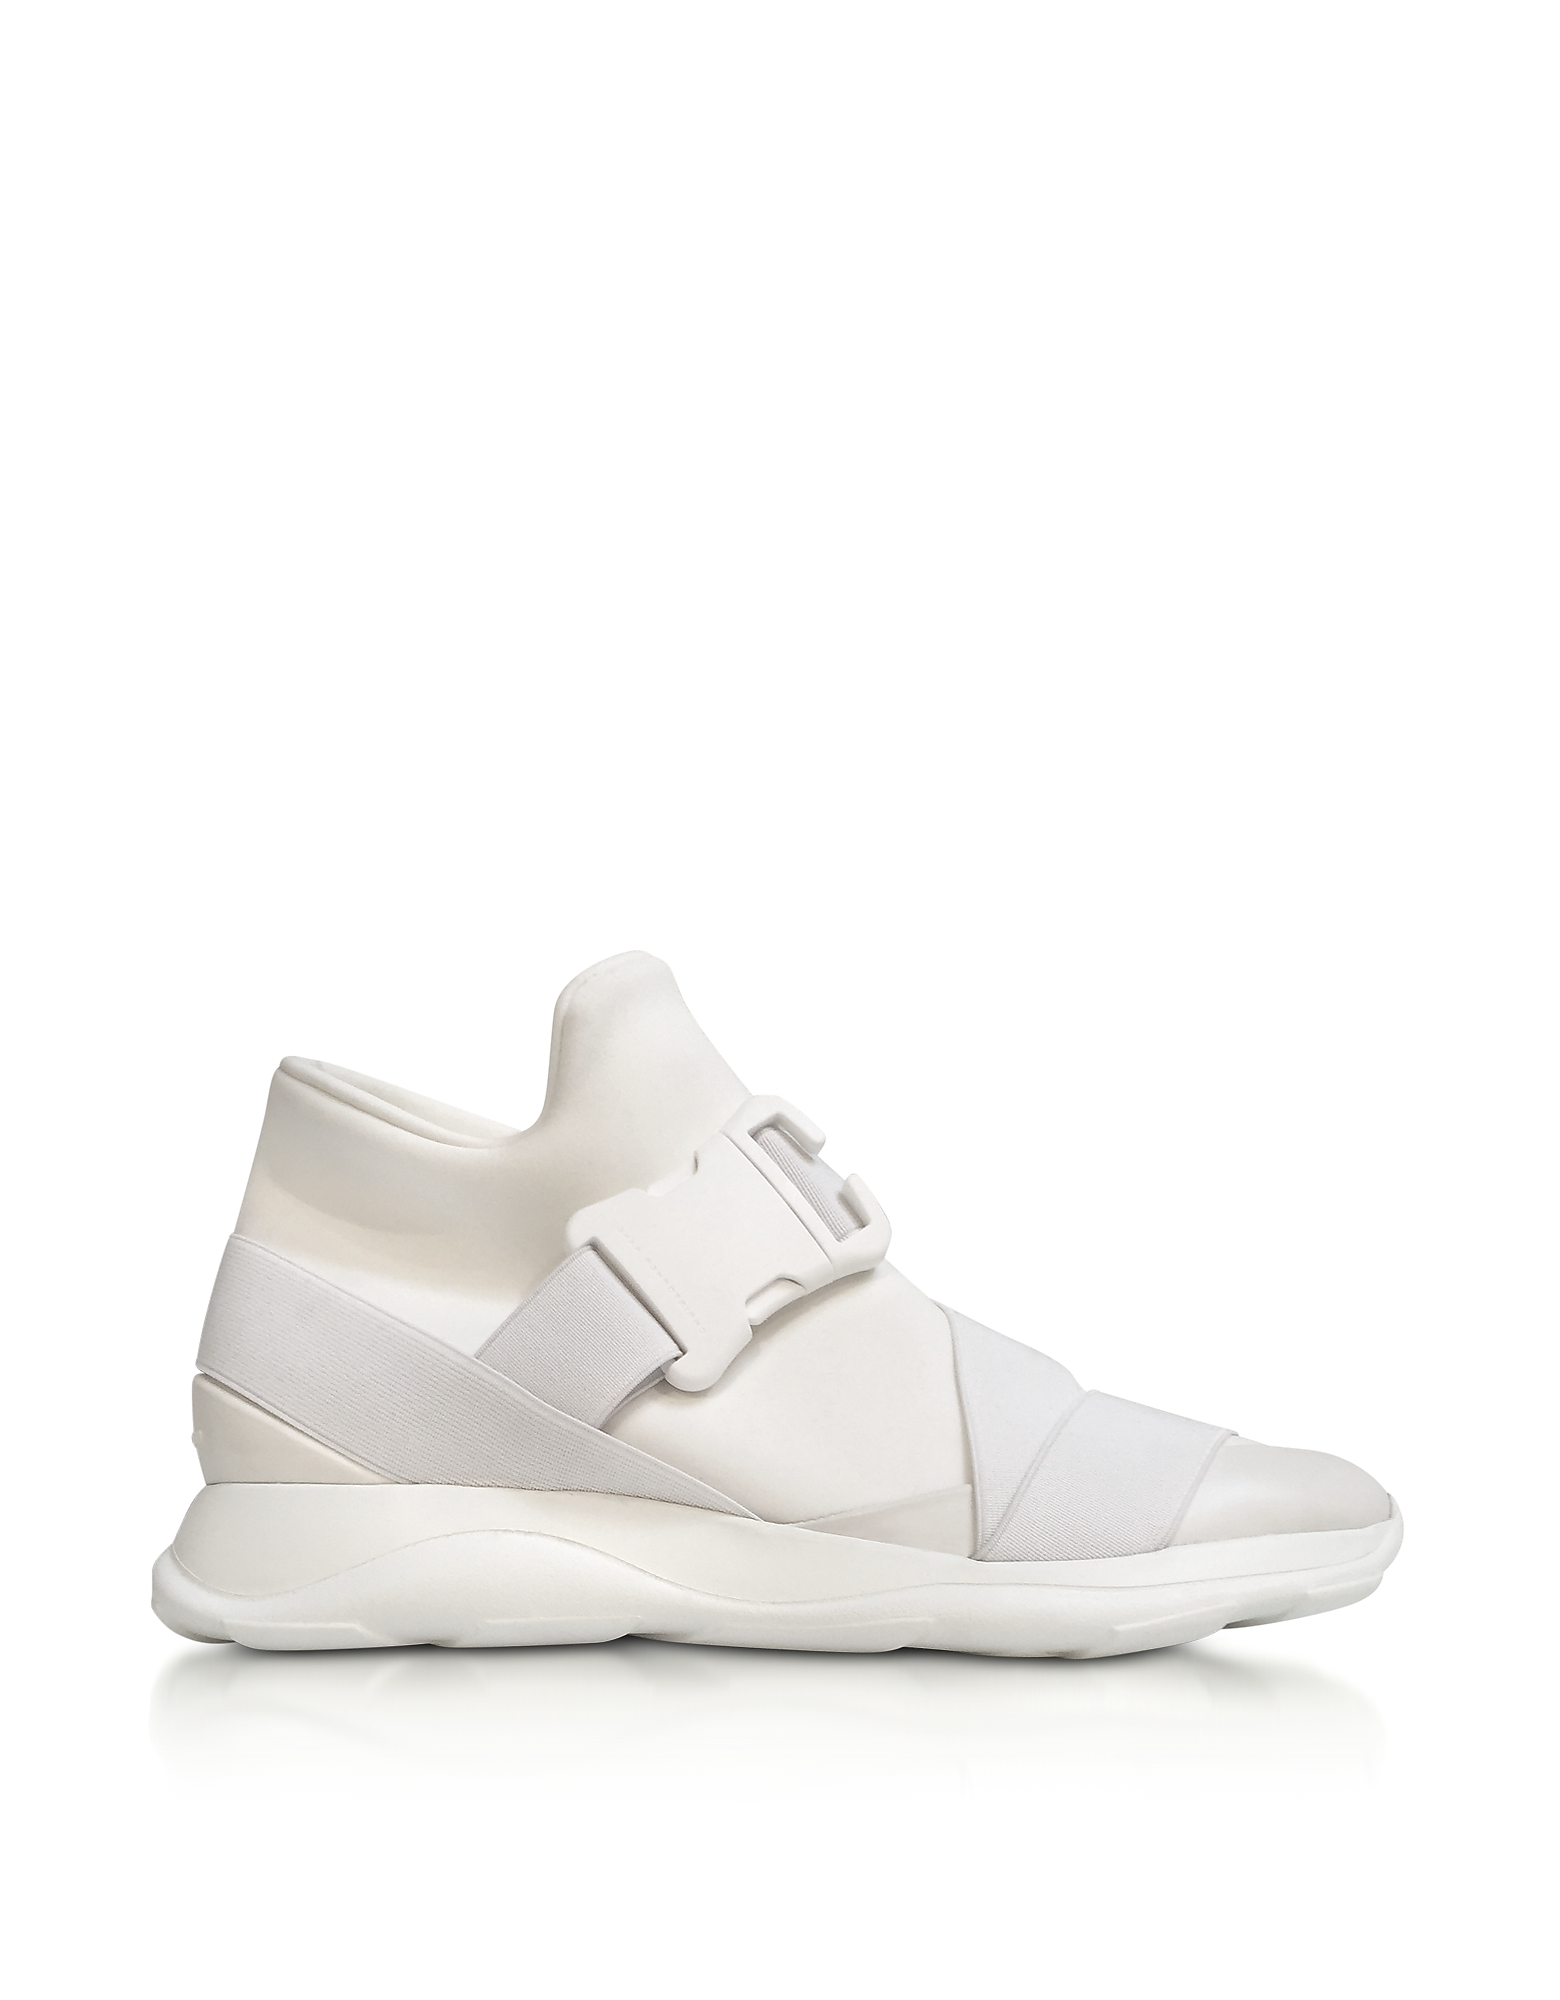 Christopher Kane Shoes, Neoprene High Top Women's Sneakers